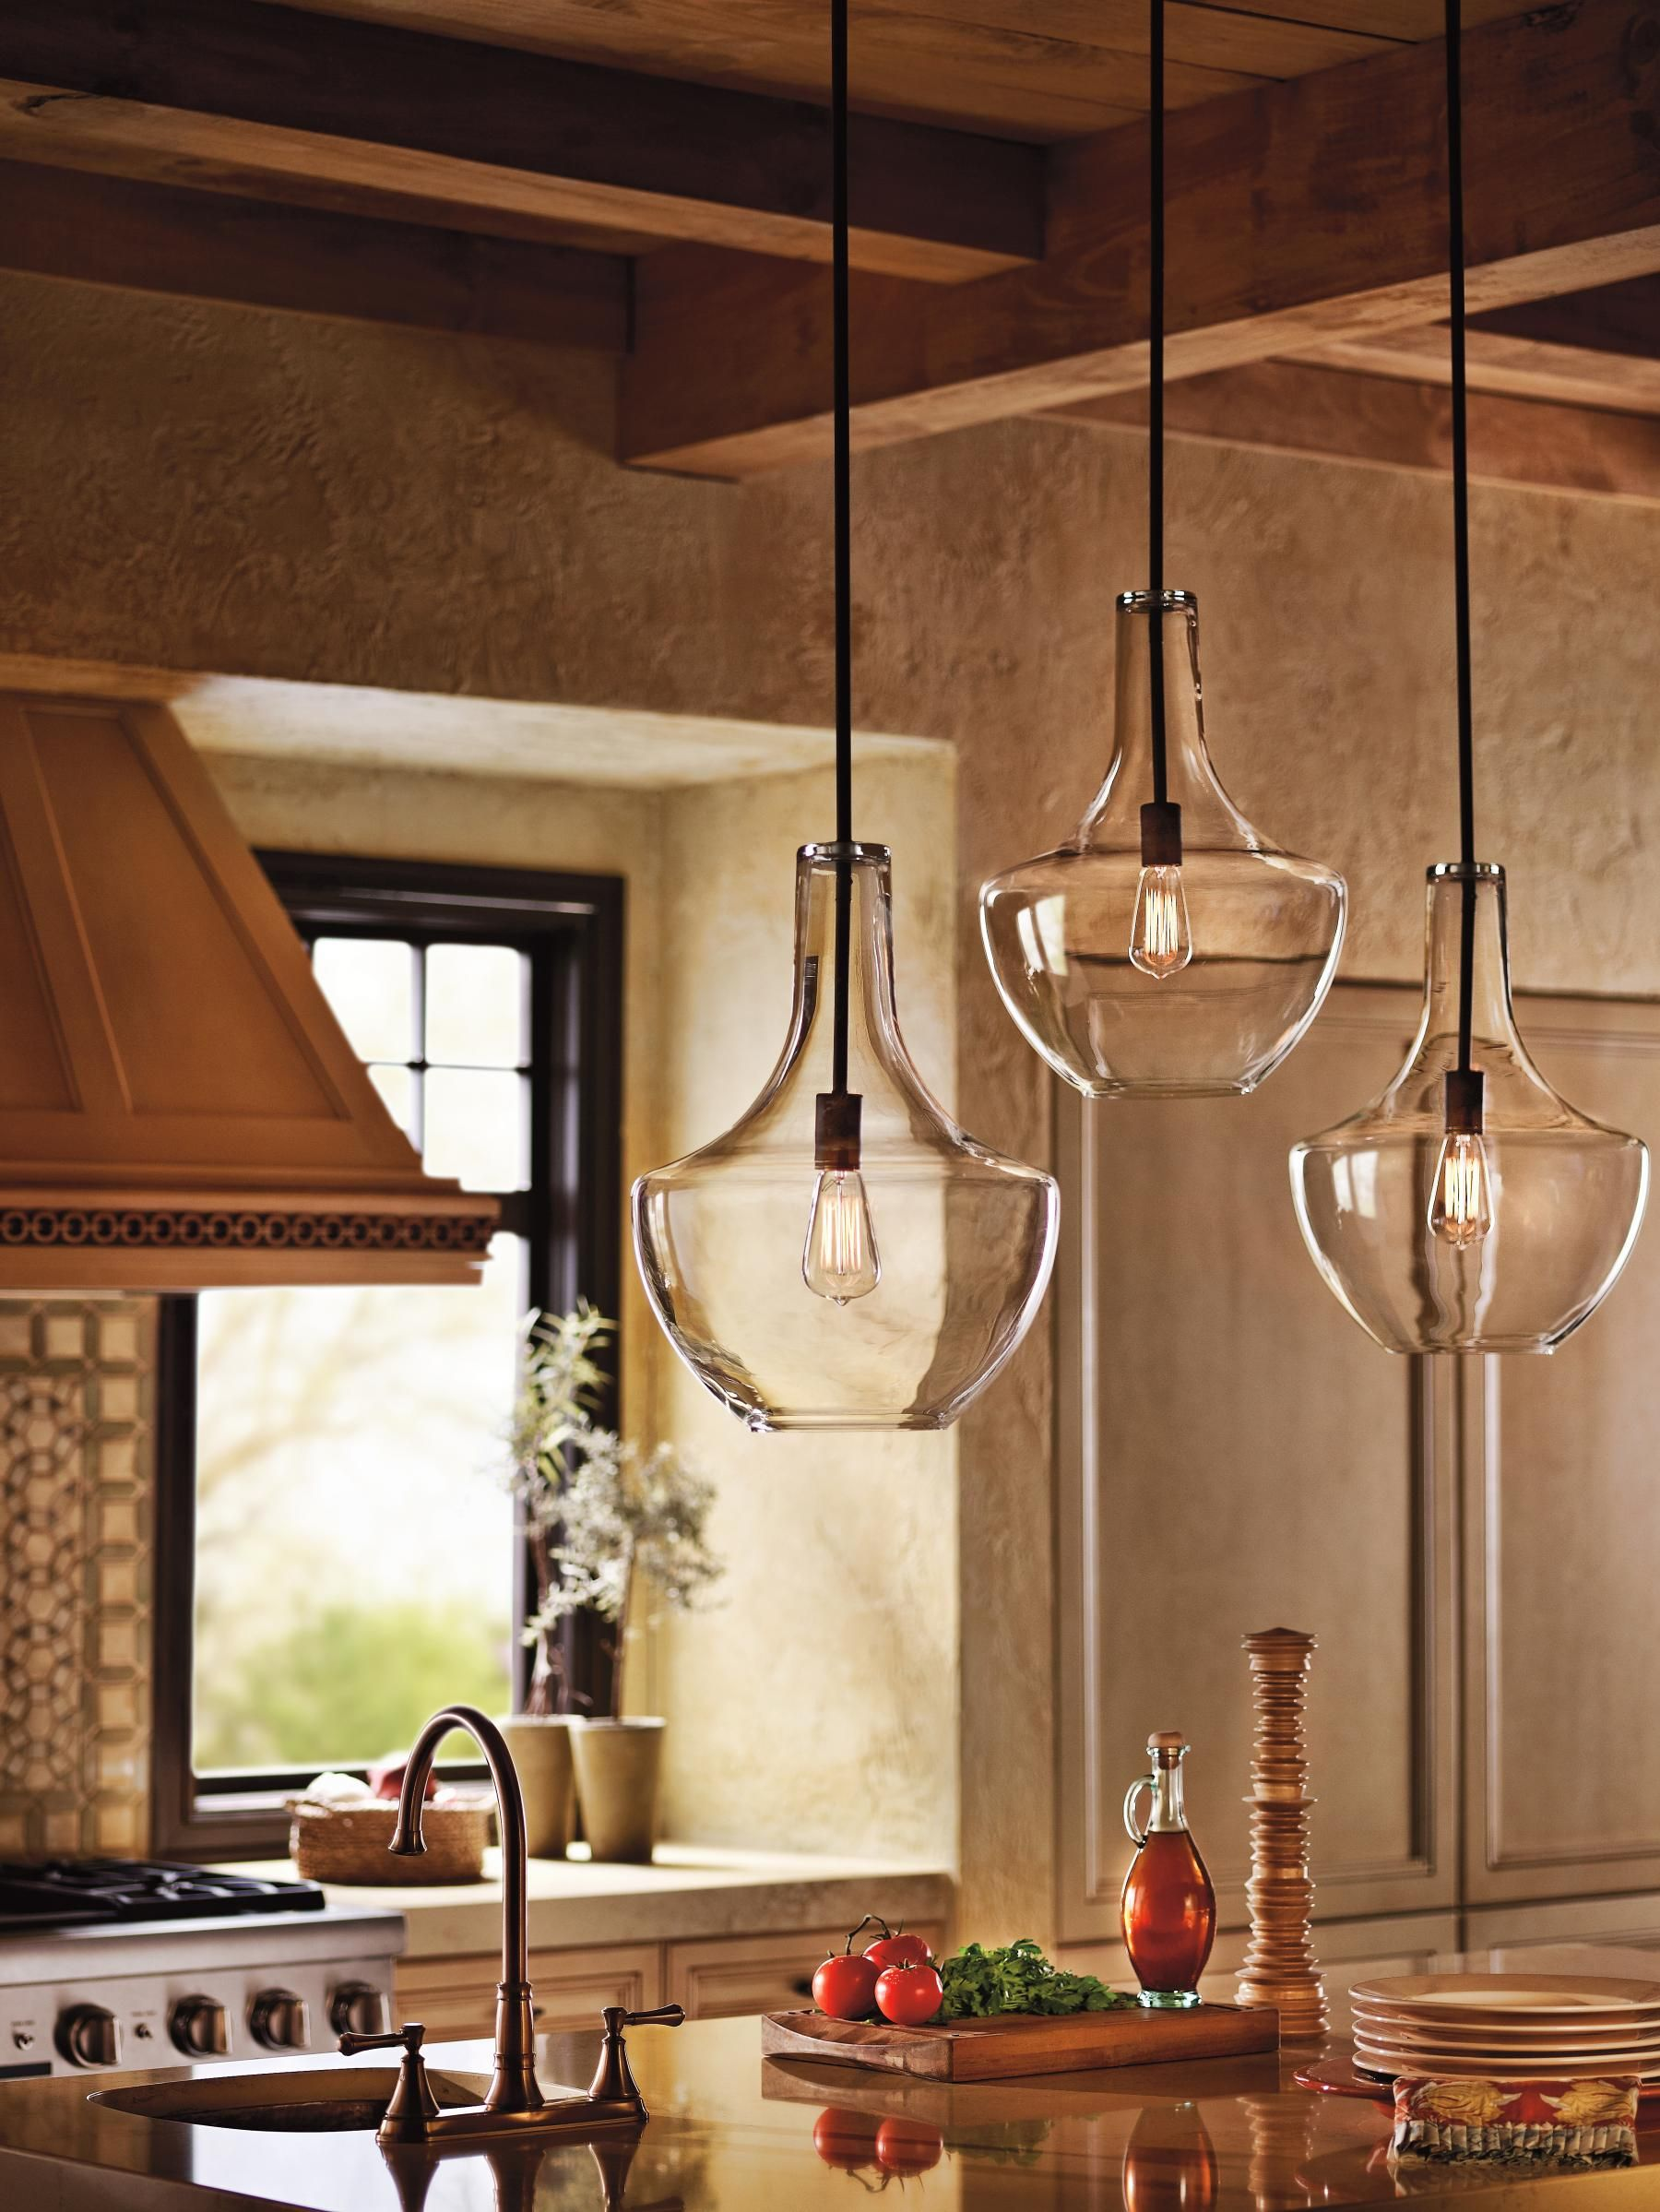 This transitional style pendant is a perfect option to light up and